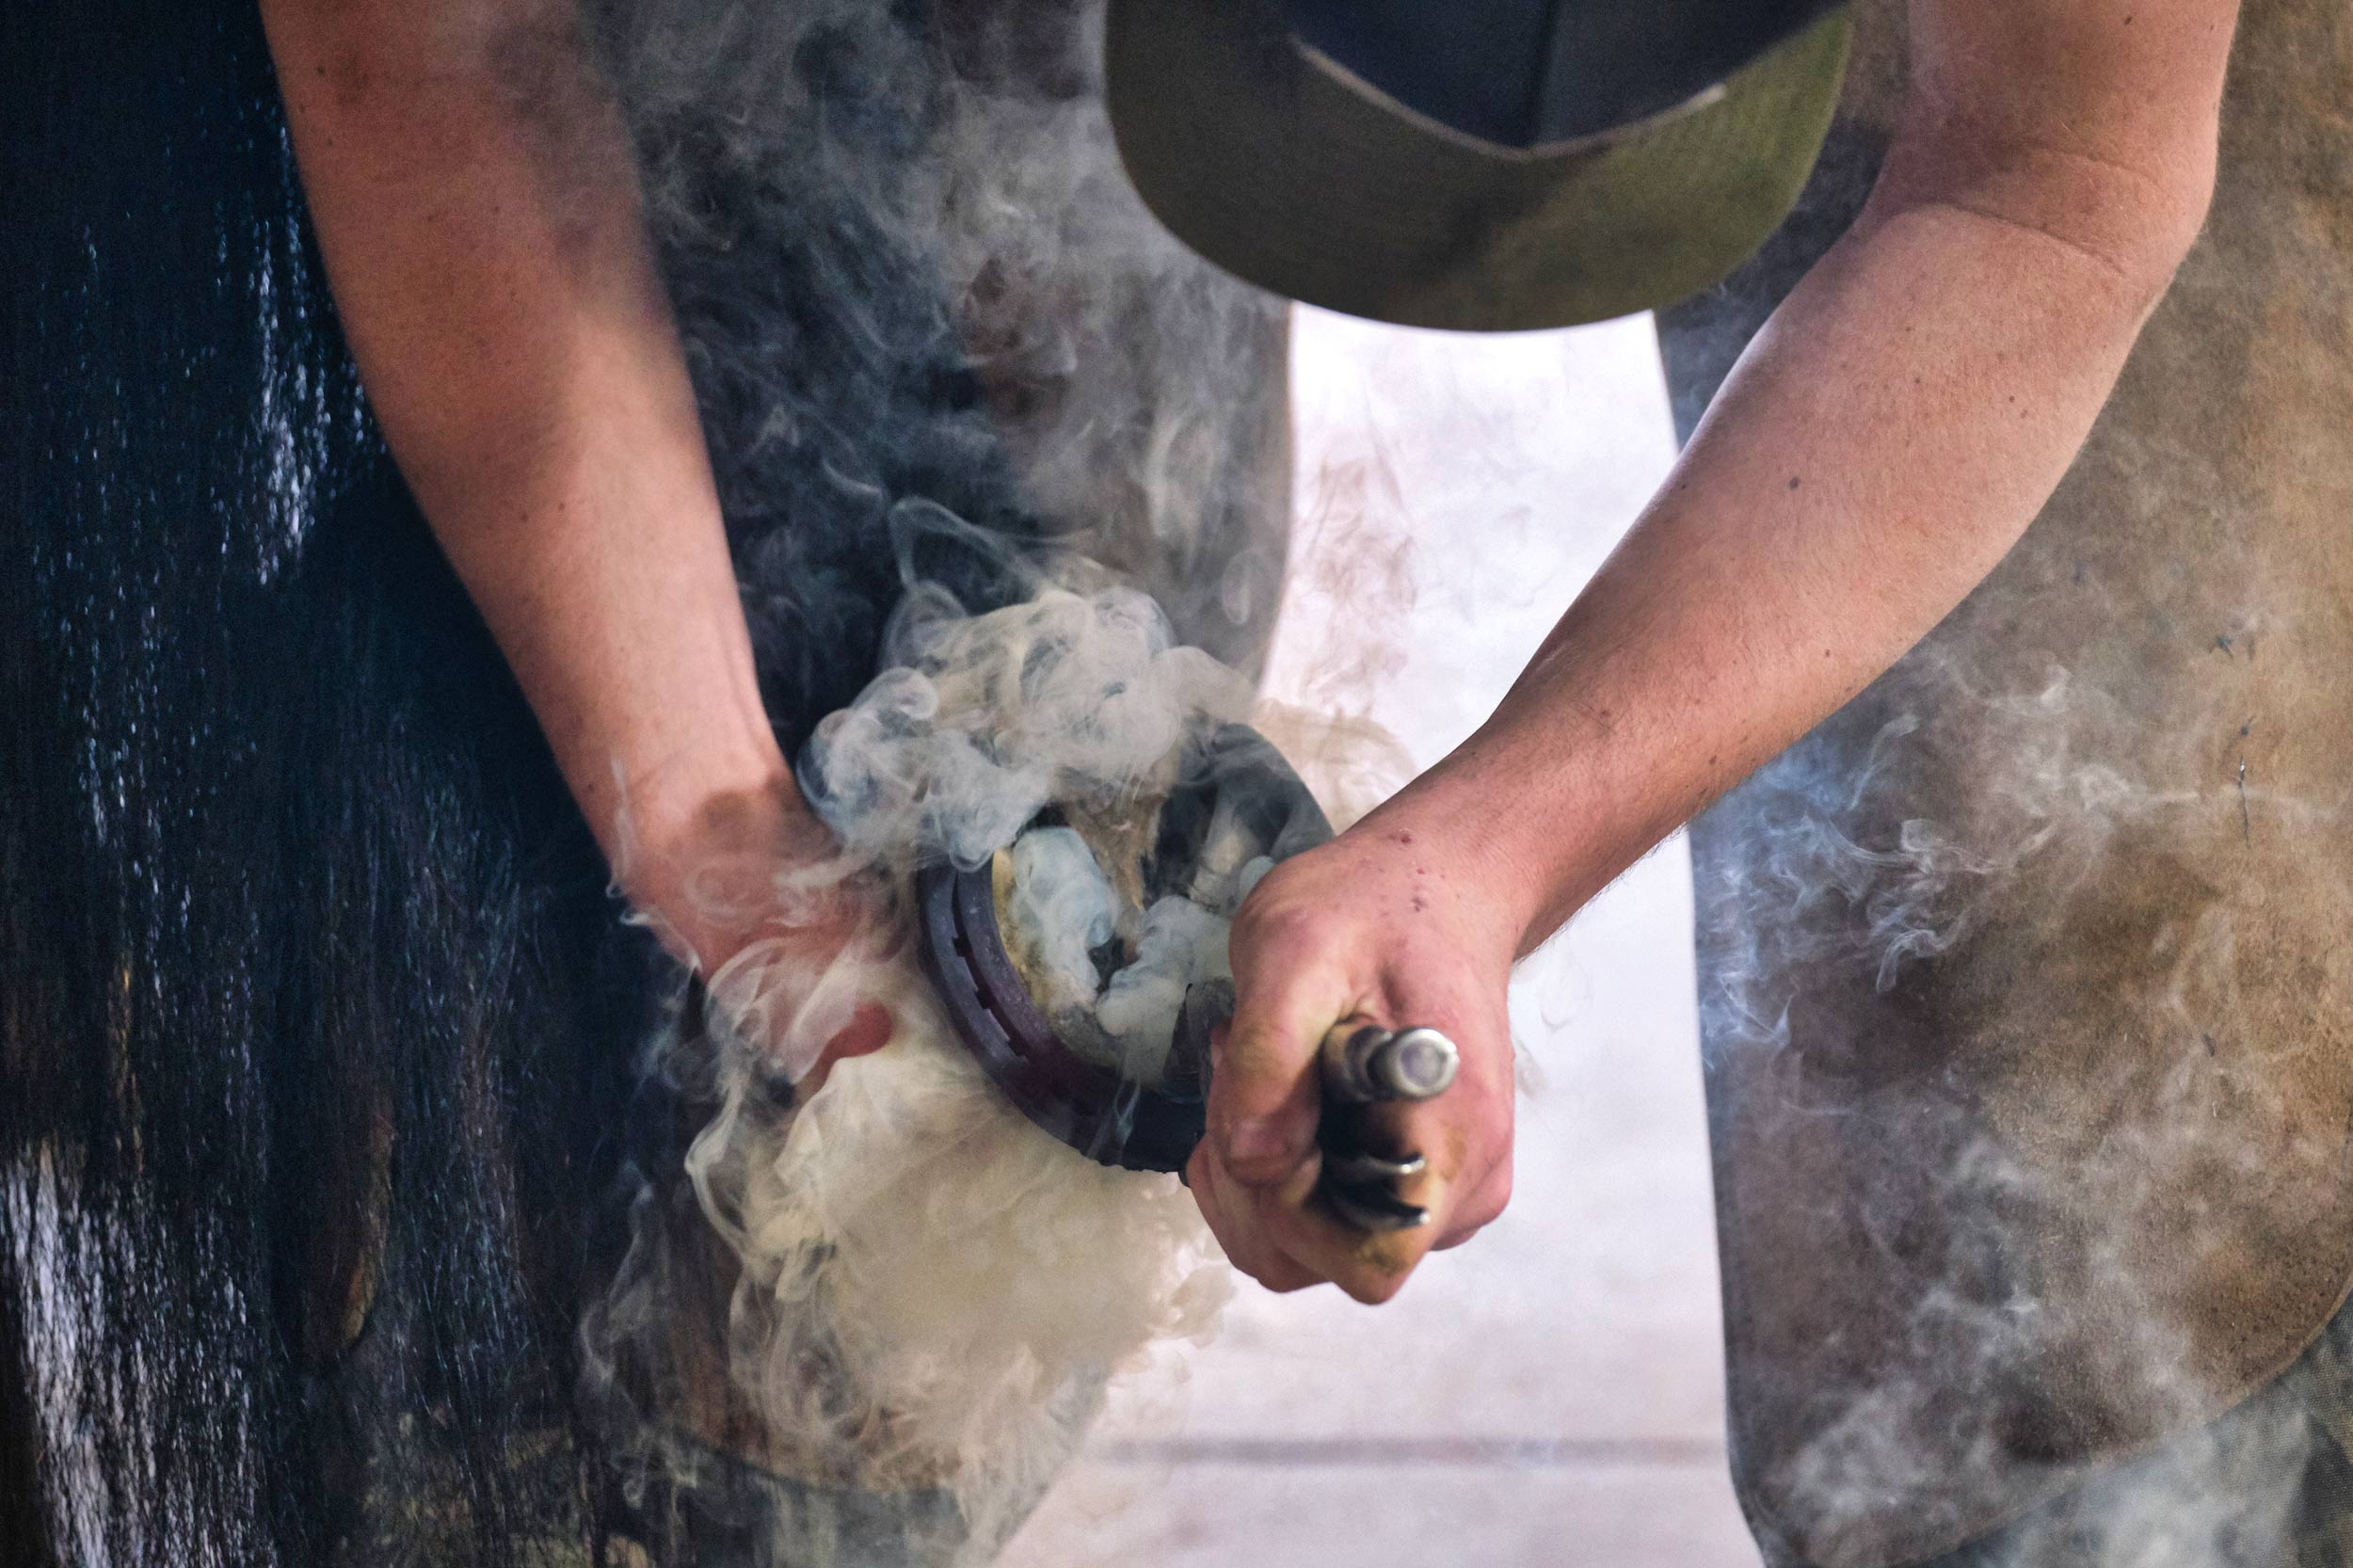 Student Farrier Hot Shoes a Horse